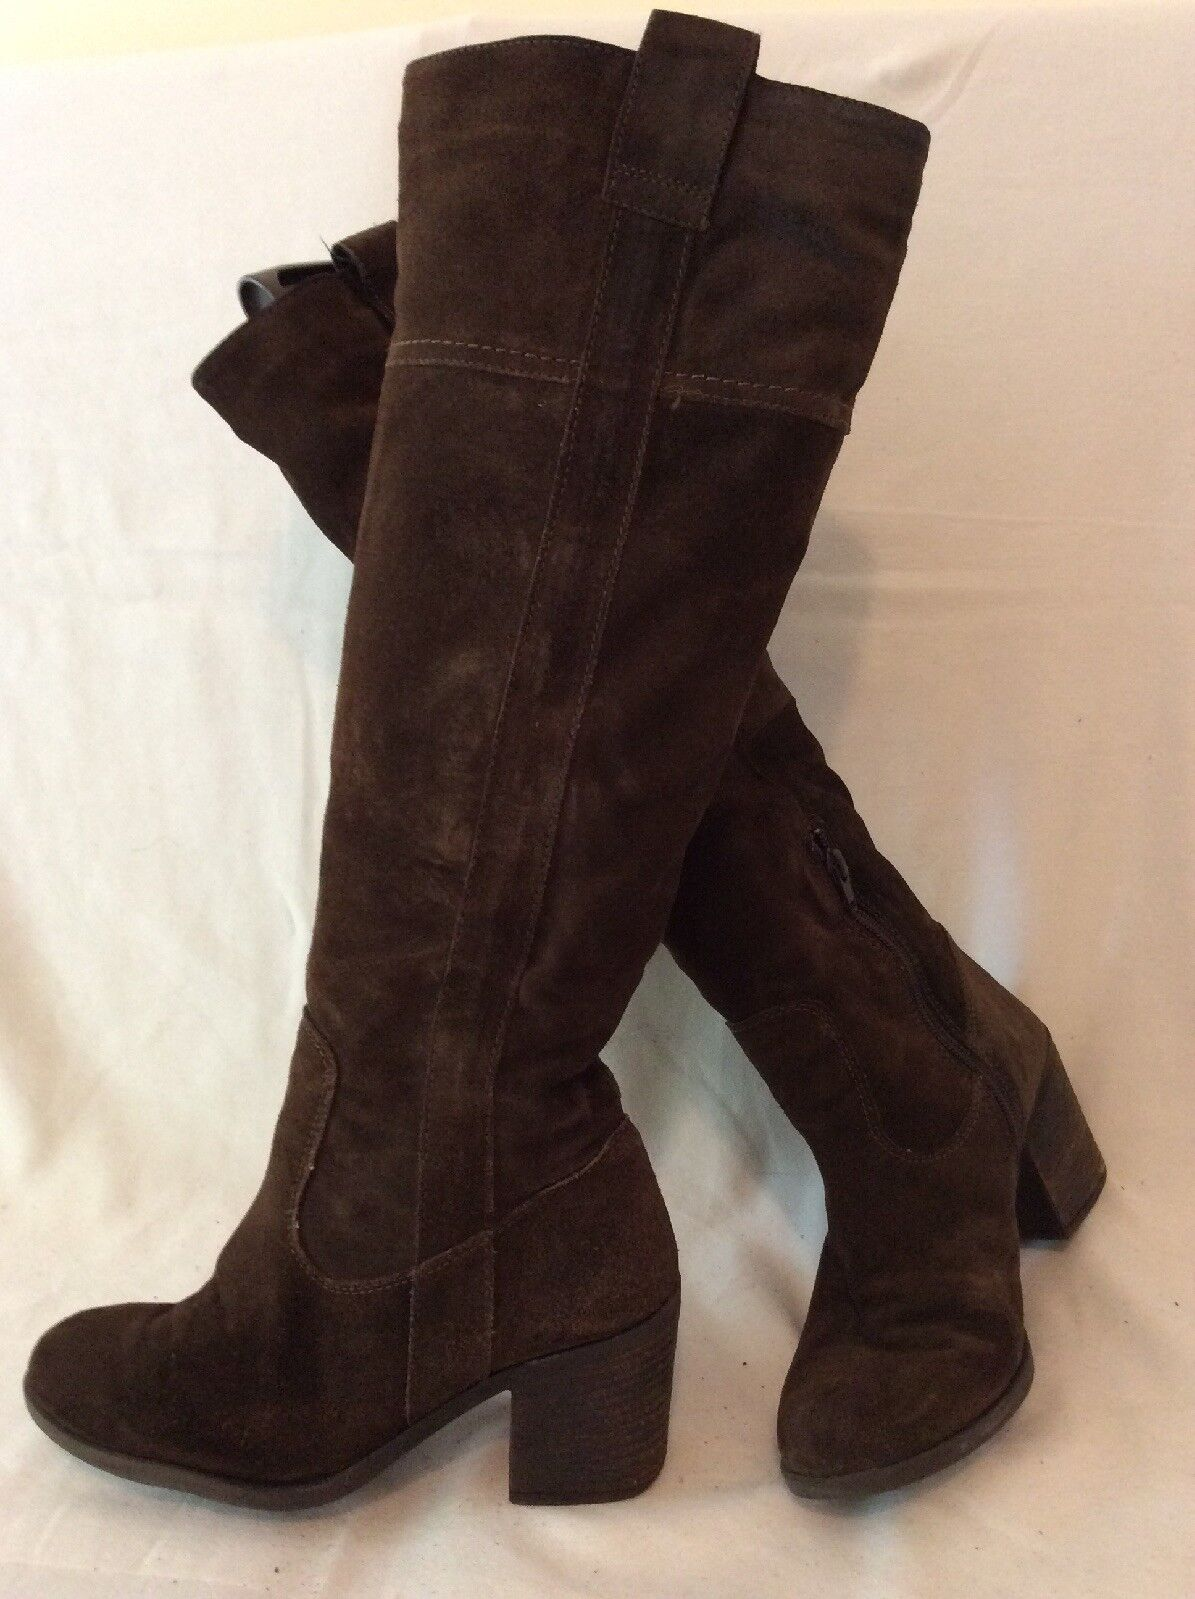 Aldo Brown Knee High Suede Boots Size 38